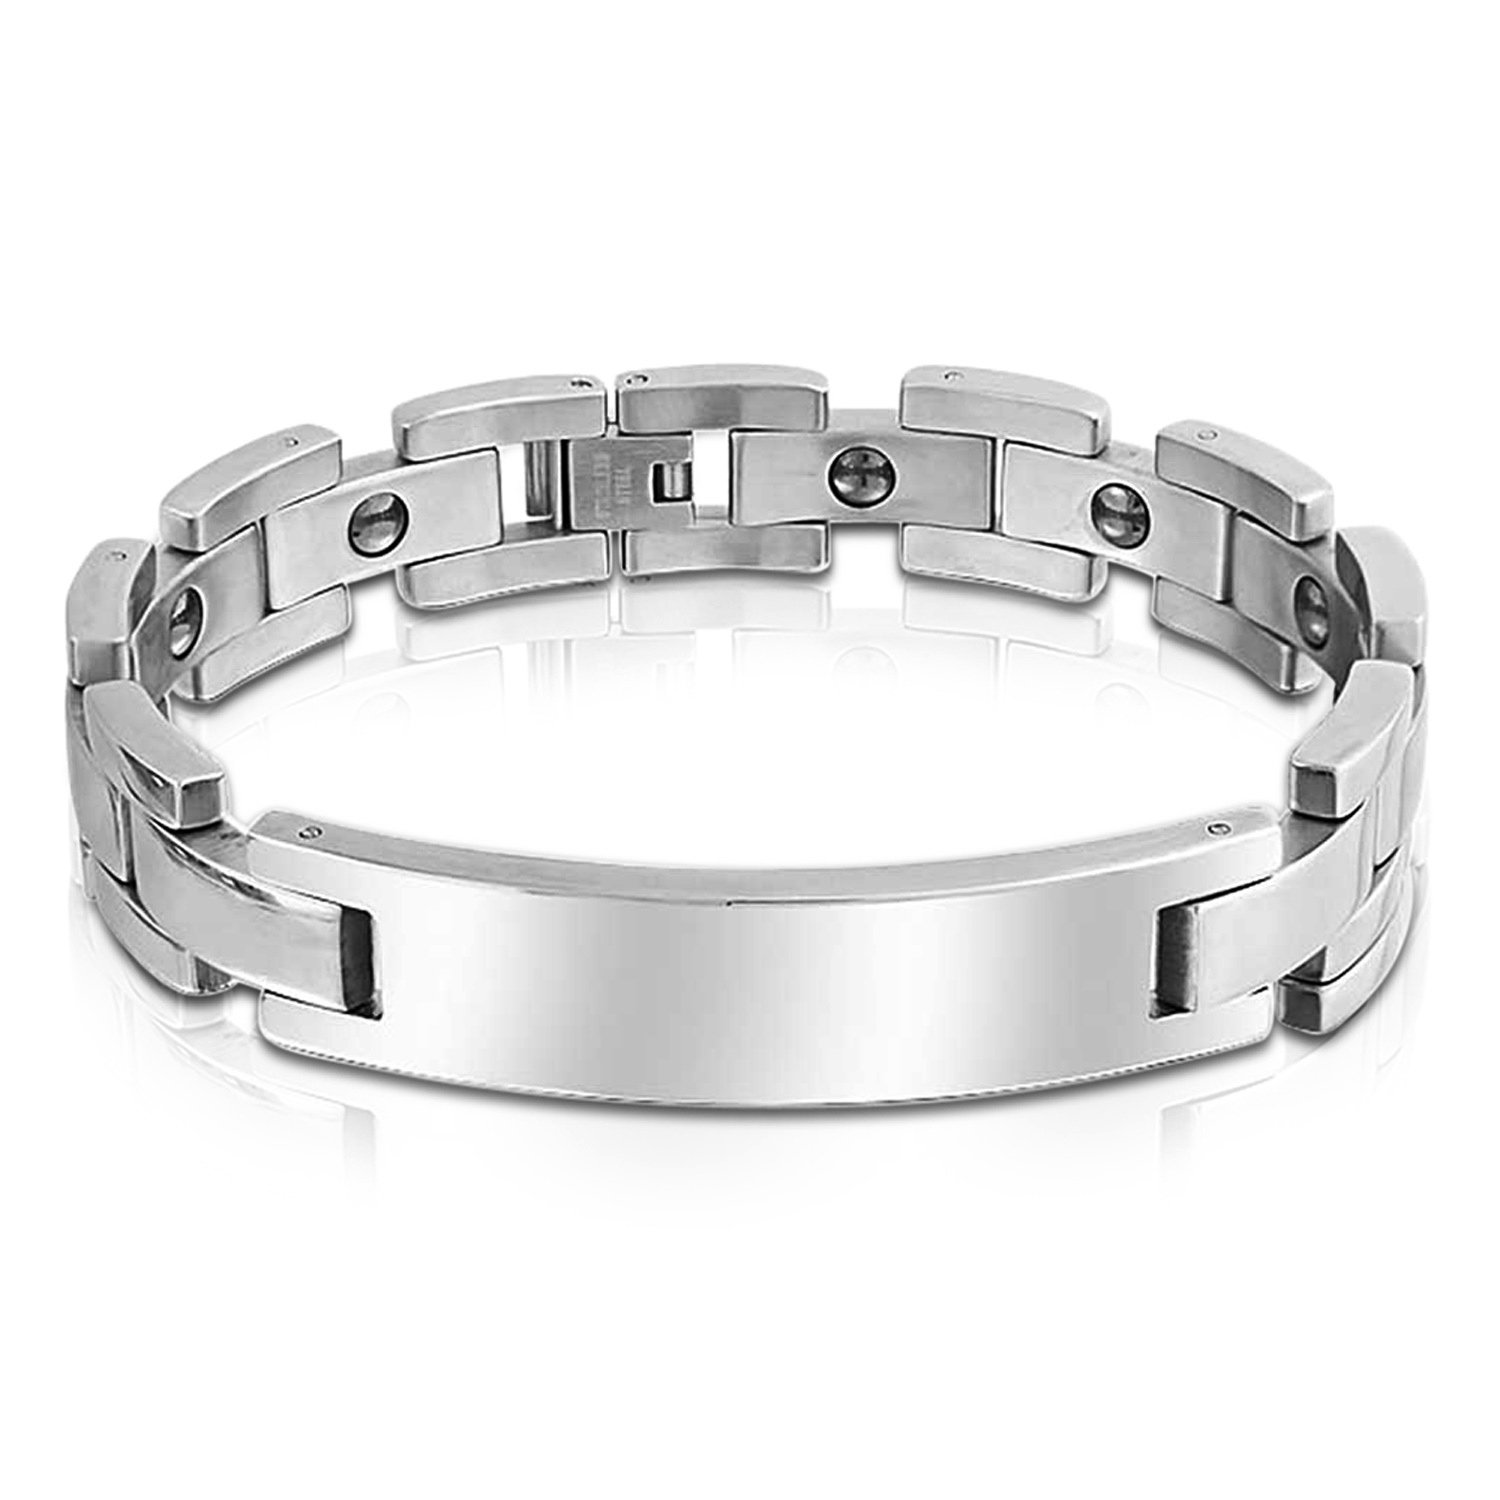 Bling Jewelry Mens Stainless Steel Polished Tiled ID Bracelet 8in with Engraving CB-30143